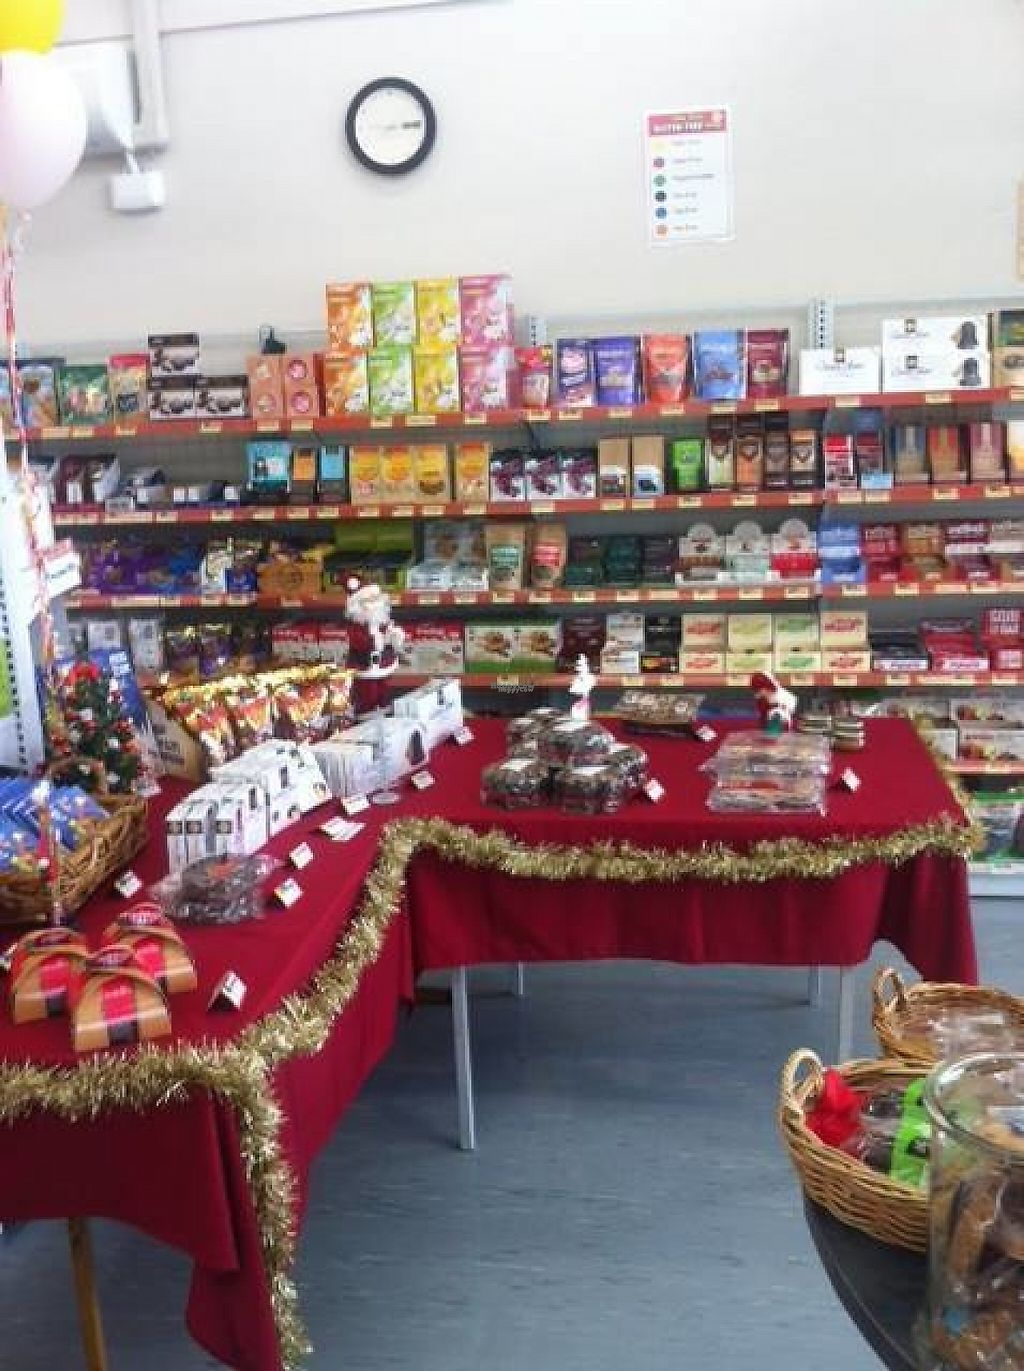 """Photo of Gluten & Allergy Free Shop  by <a href=""""/members/profile/AvrilTkd"""">AvrilTkd</a> <br/>The part of the shop! <br/> December 30, 2016  - <a href='/contact/abuse/image/84432/206370'>Report</a>"""